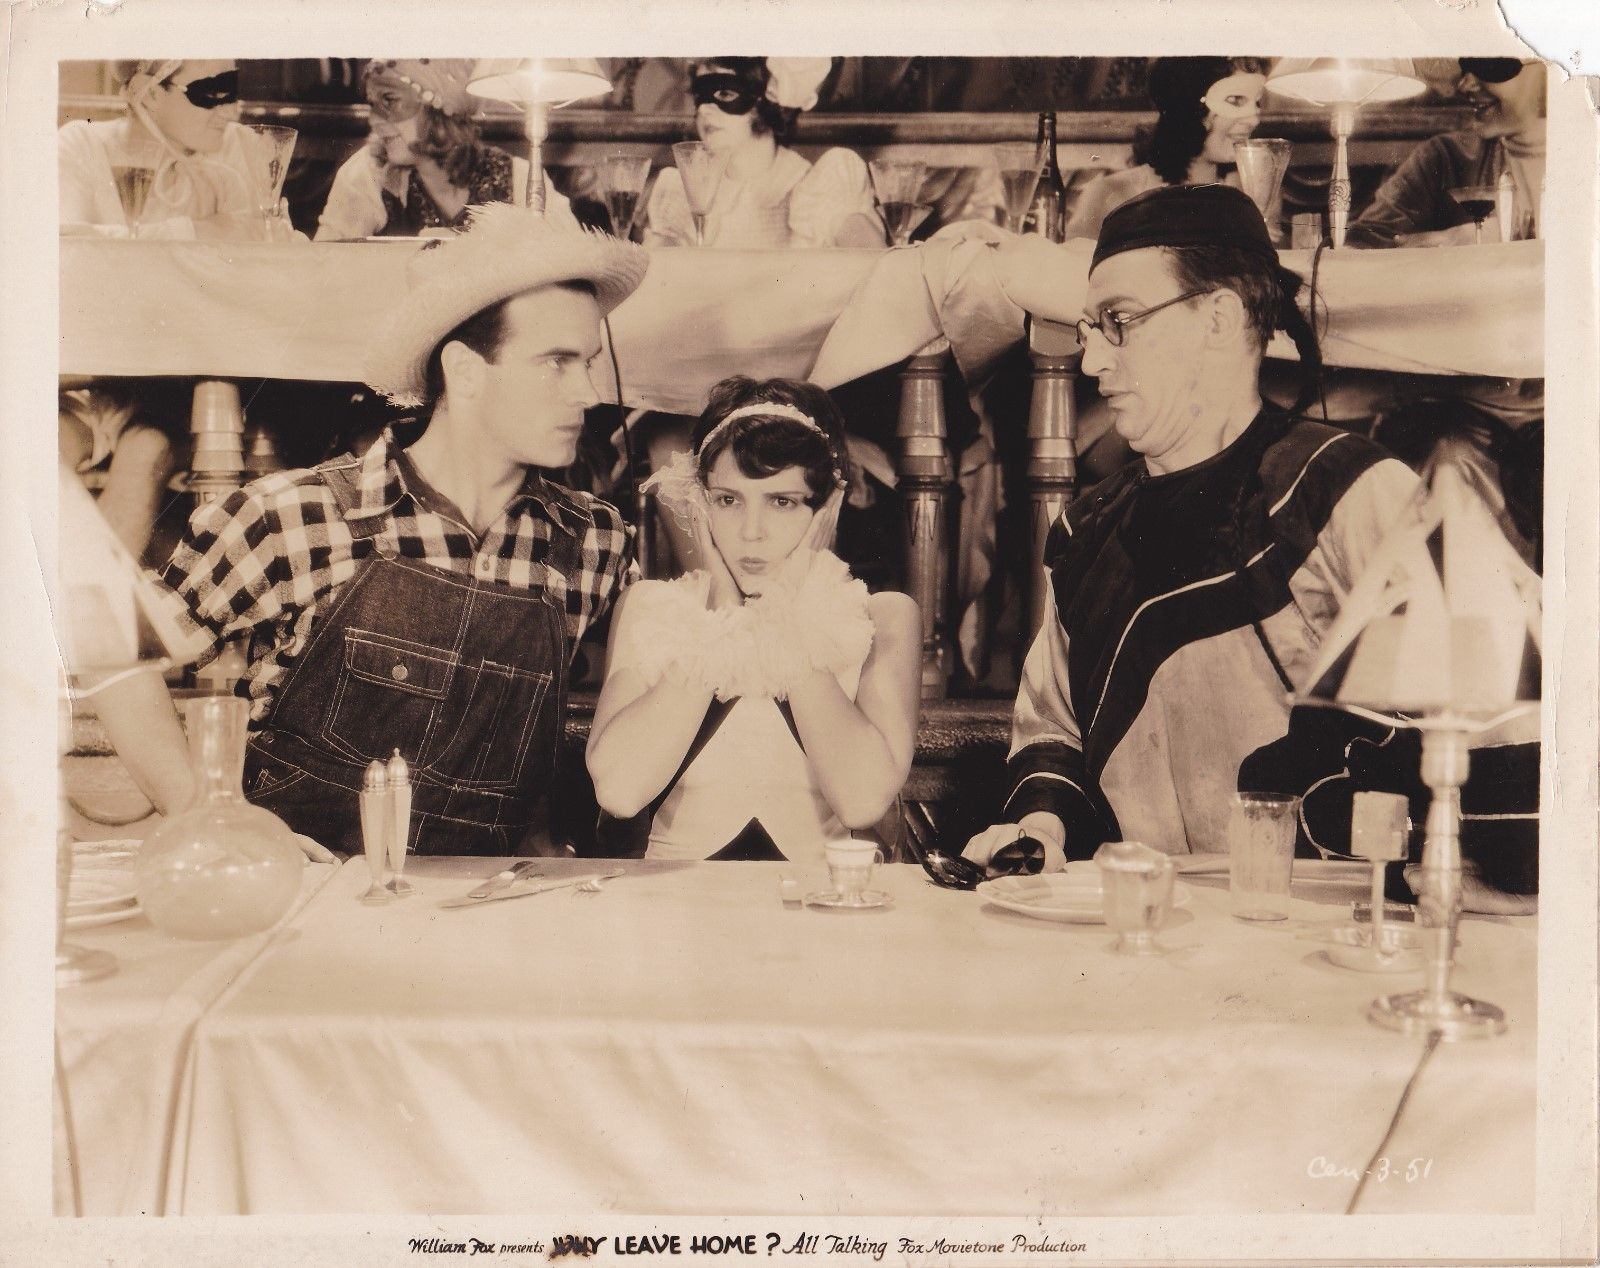 Sue Carol, Walter Catlett, and Nick Stuart in Why Leave Home? (1929)